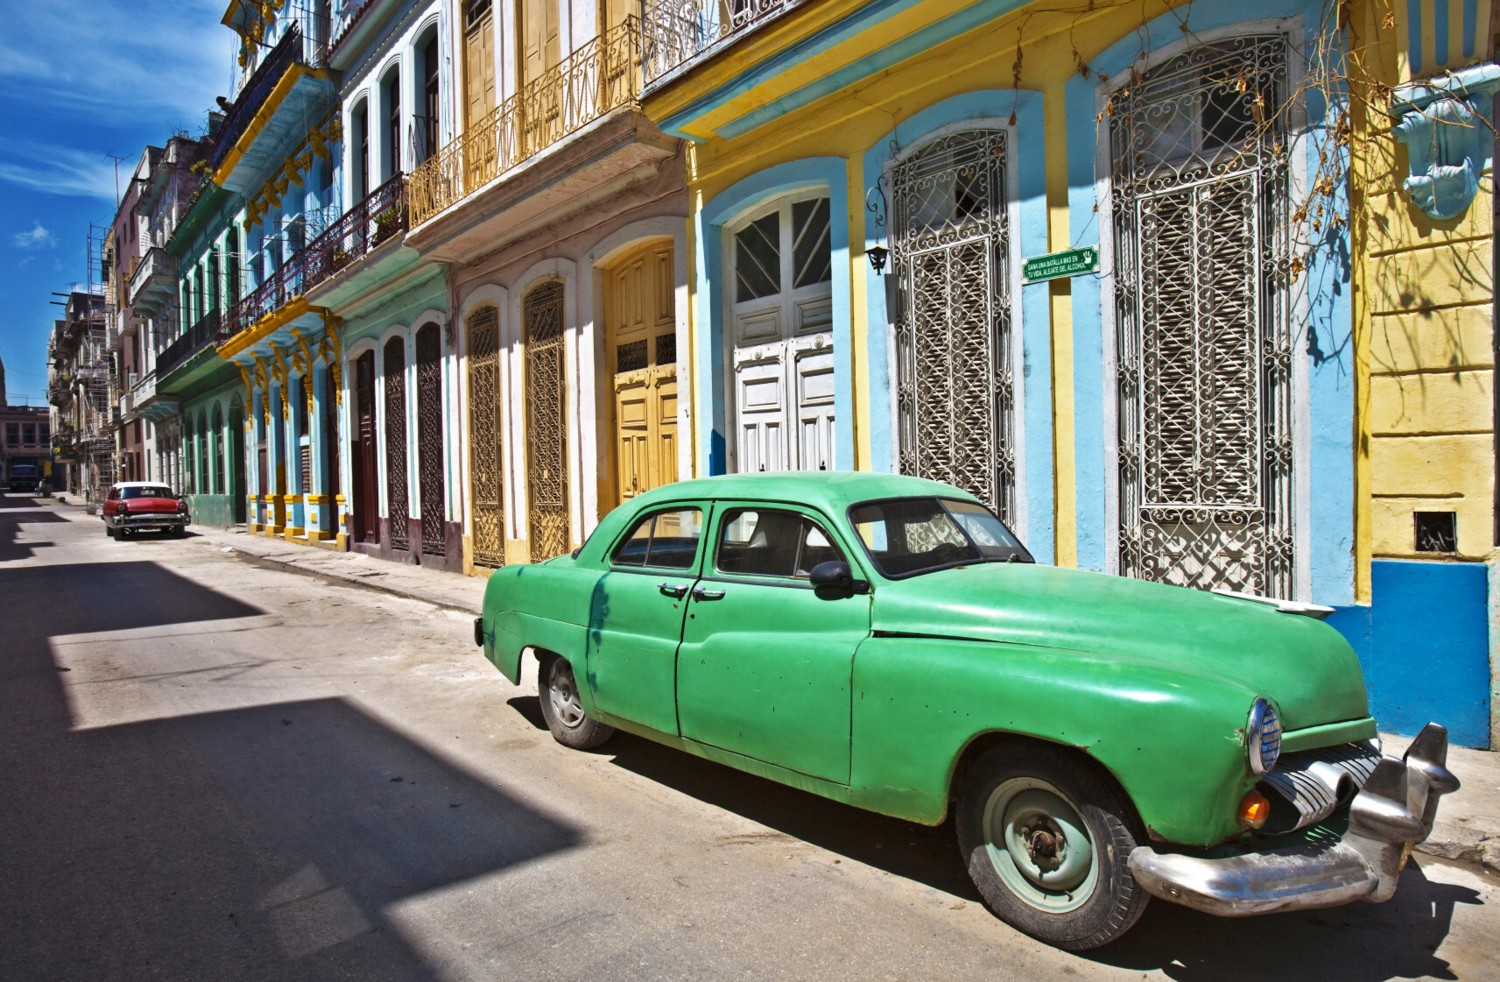 Tour Companies, Cheering Obama's Cuba Policy, Urge Travelers to 'See Cuba Now'